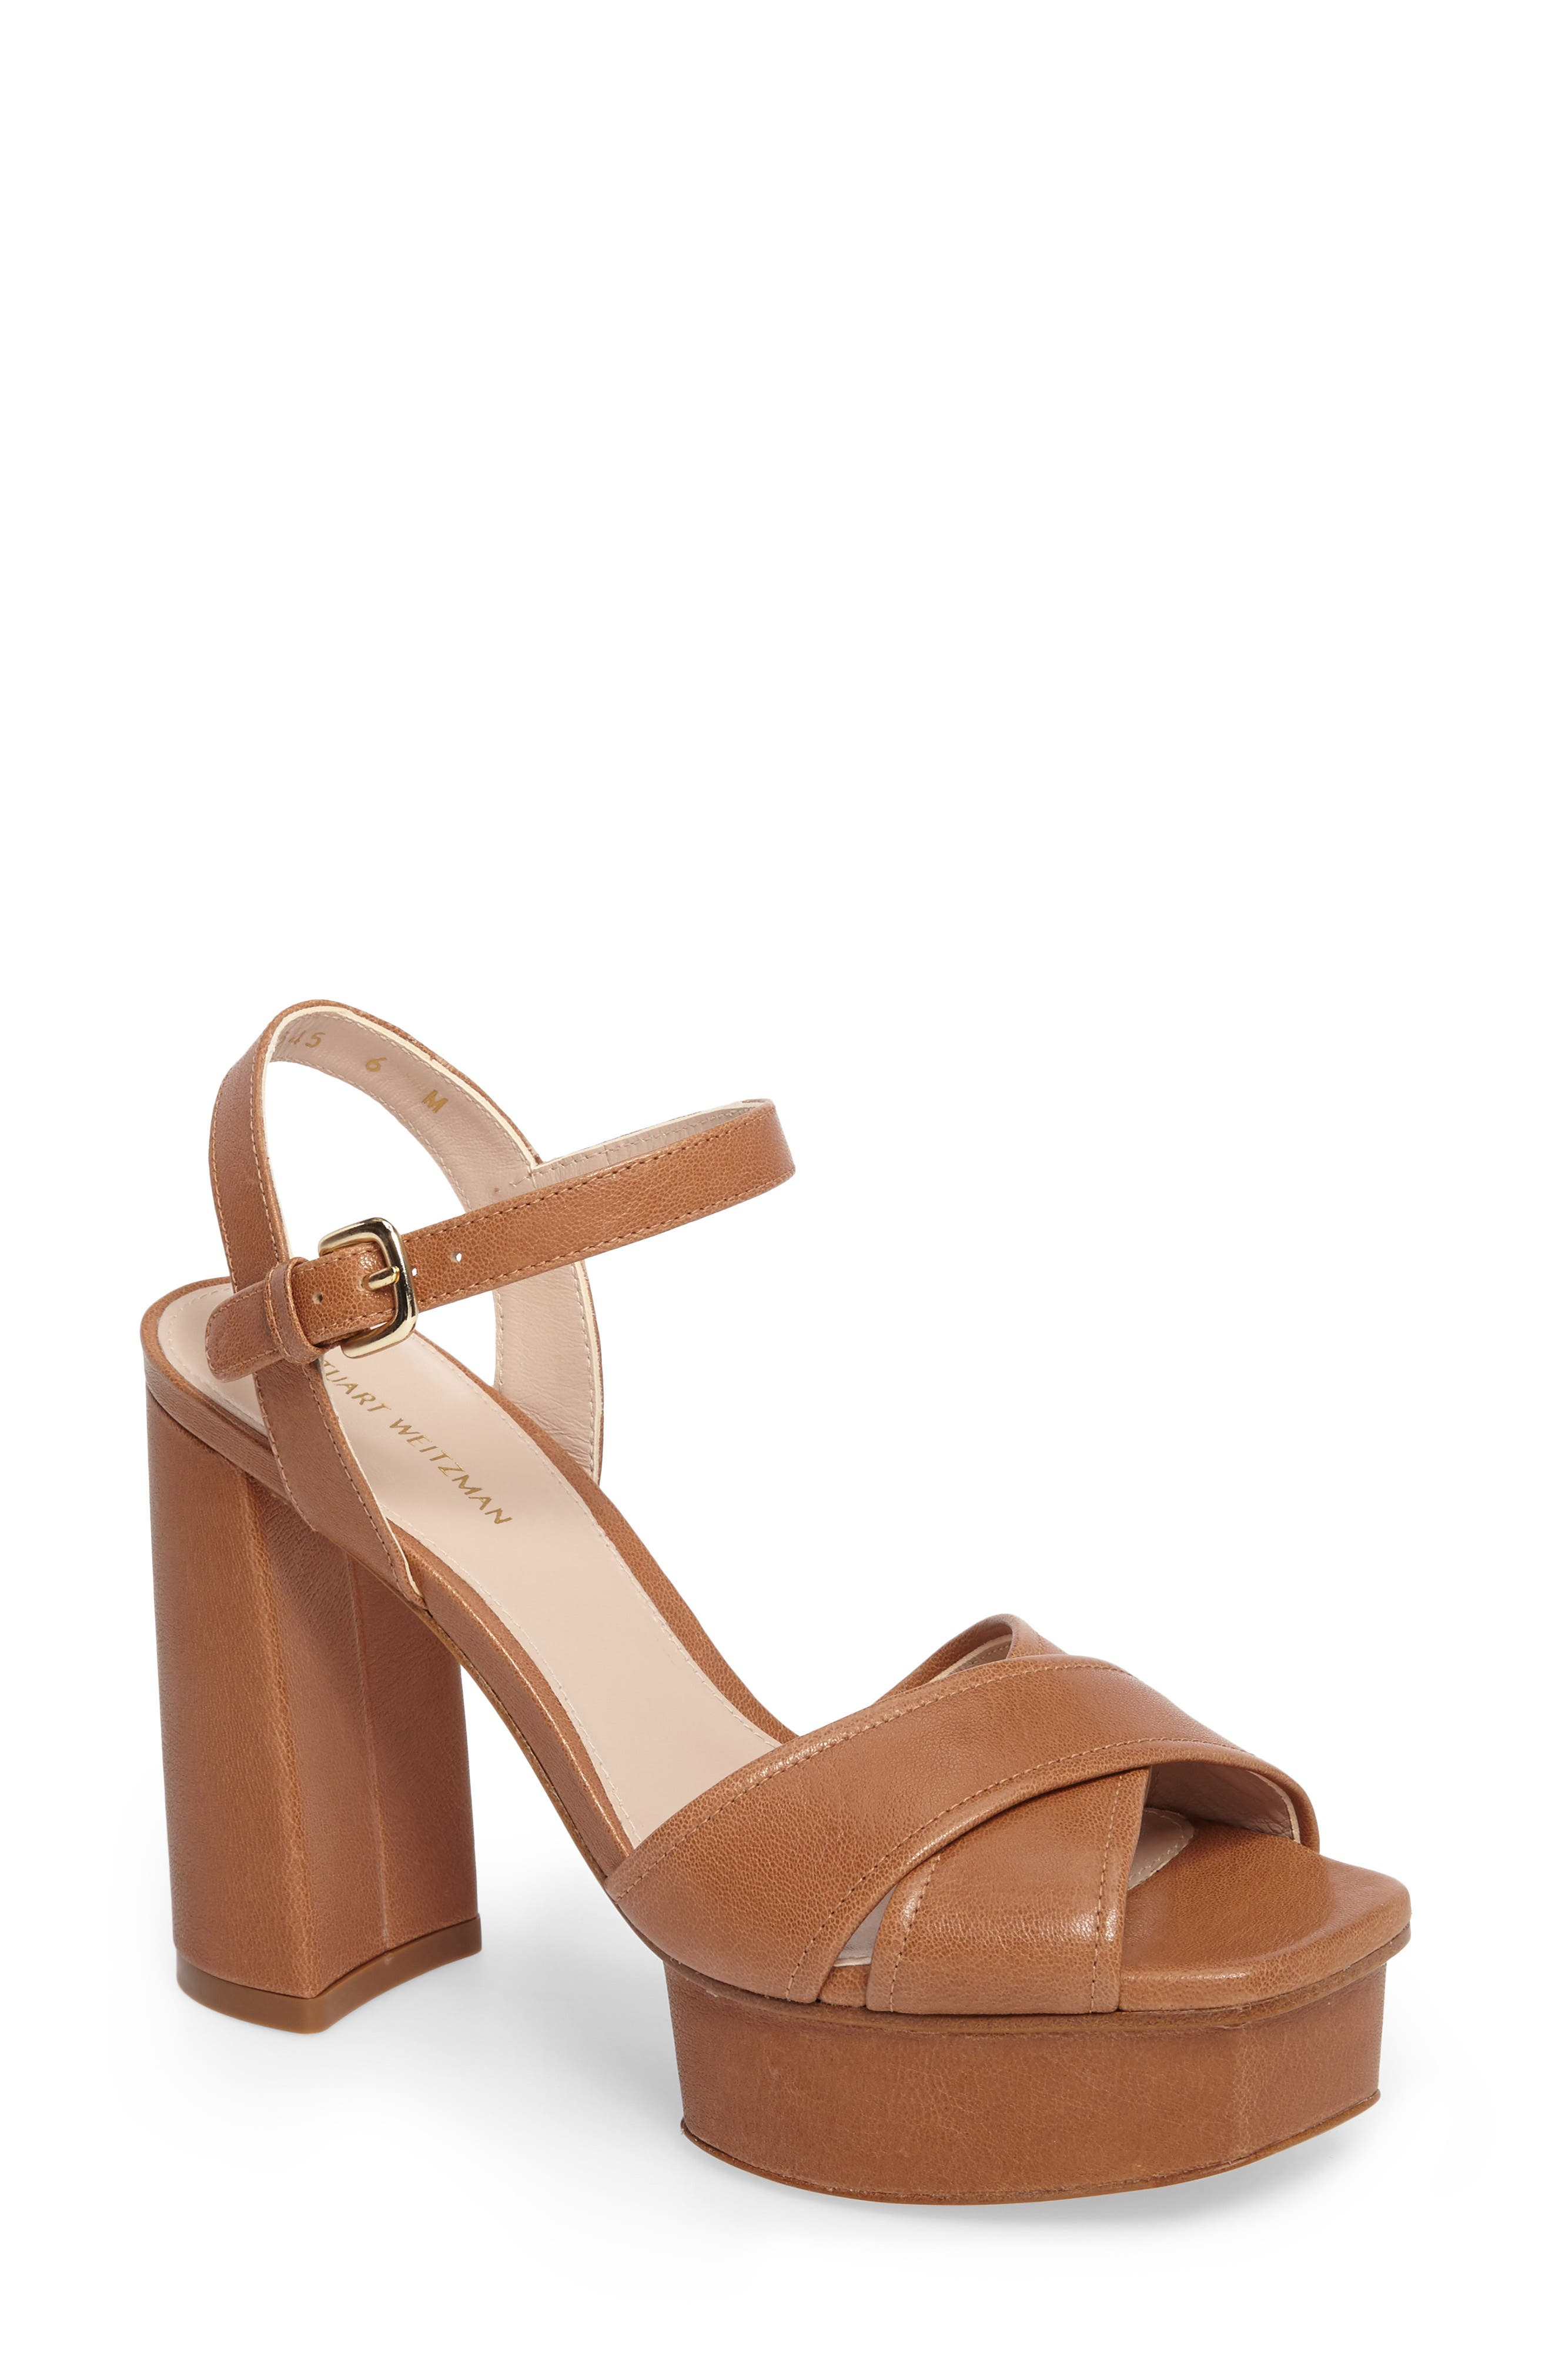 Stuart Weitzman Exposed Platform Sandal (Women)